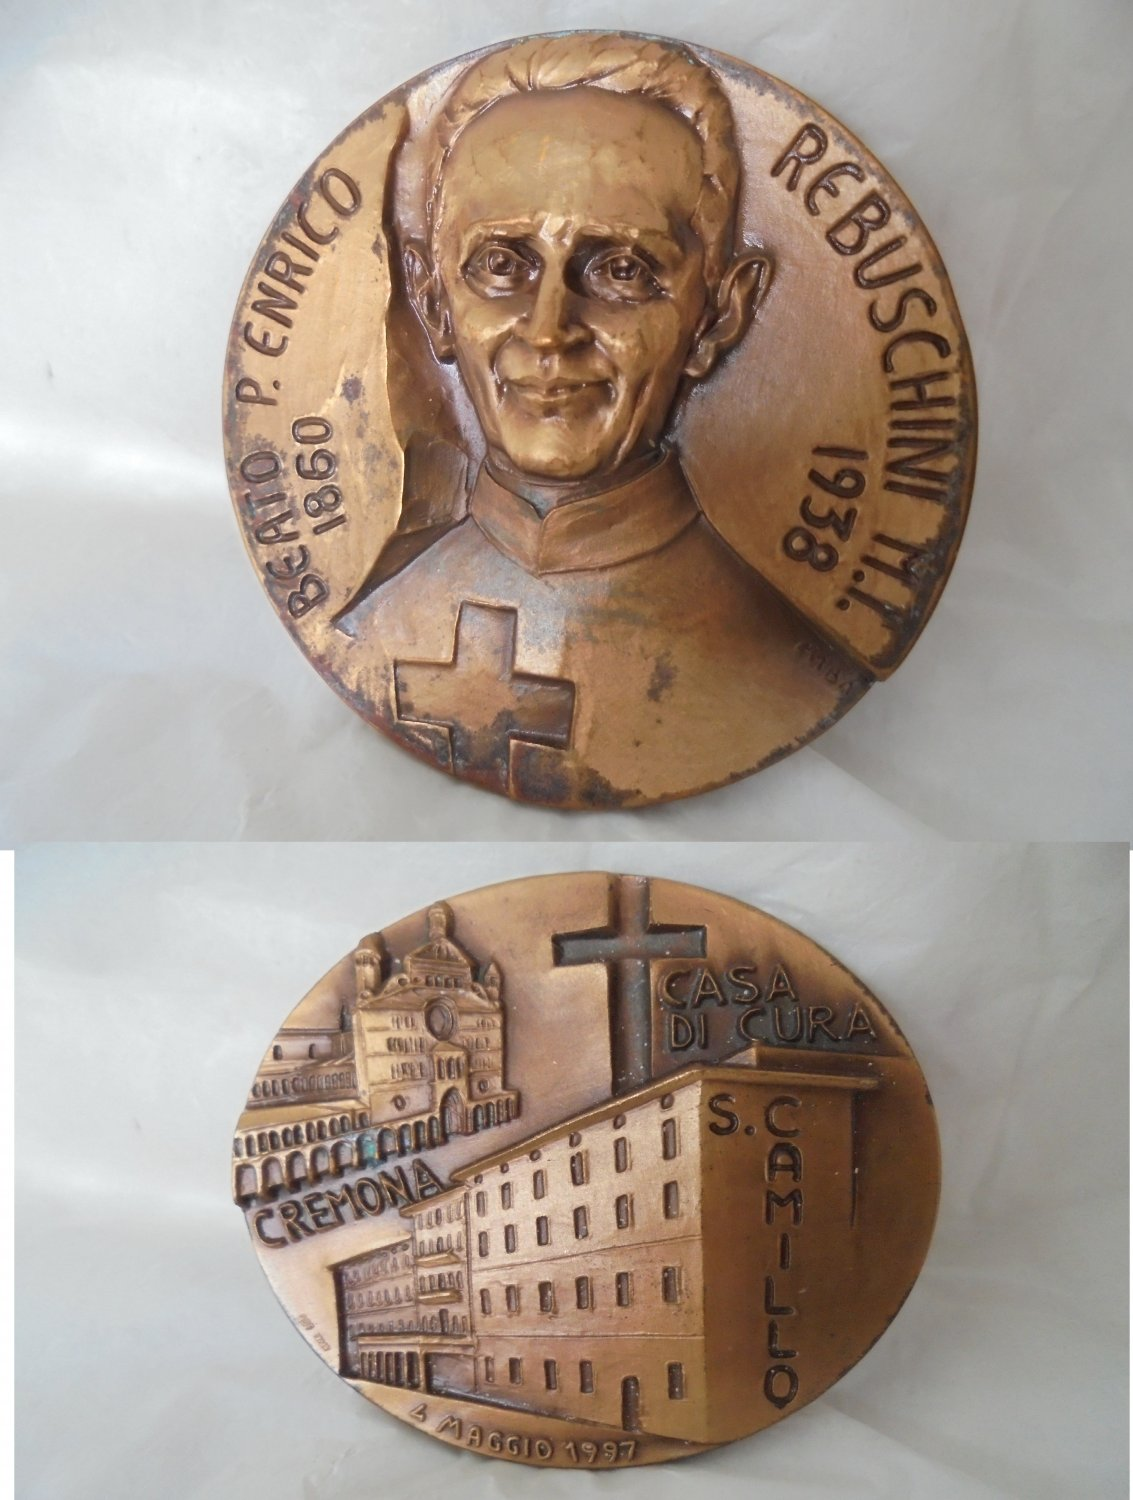 BRONZE MEDAL of Blessed Enrico Rebuschini 1997